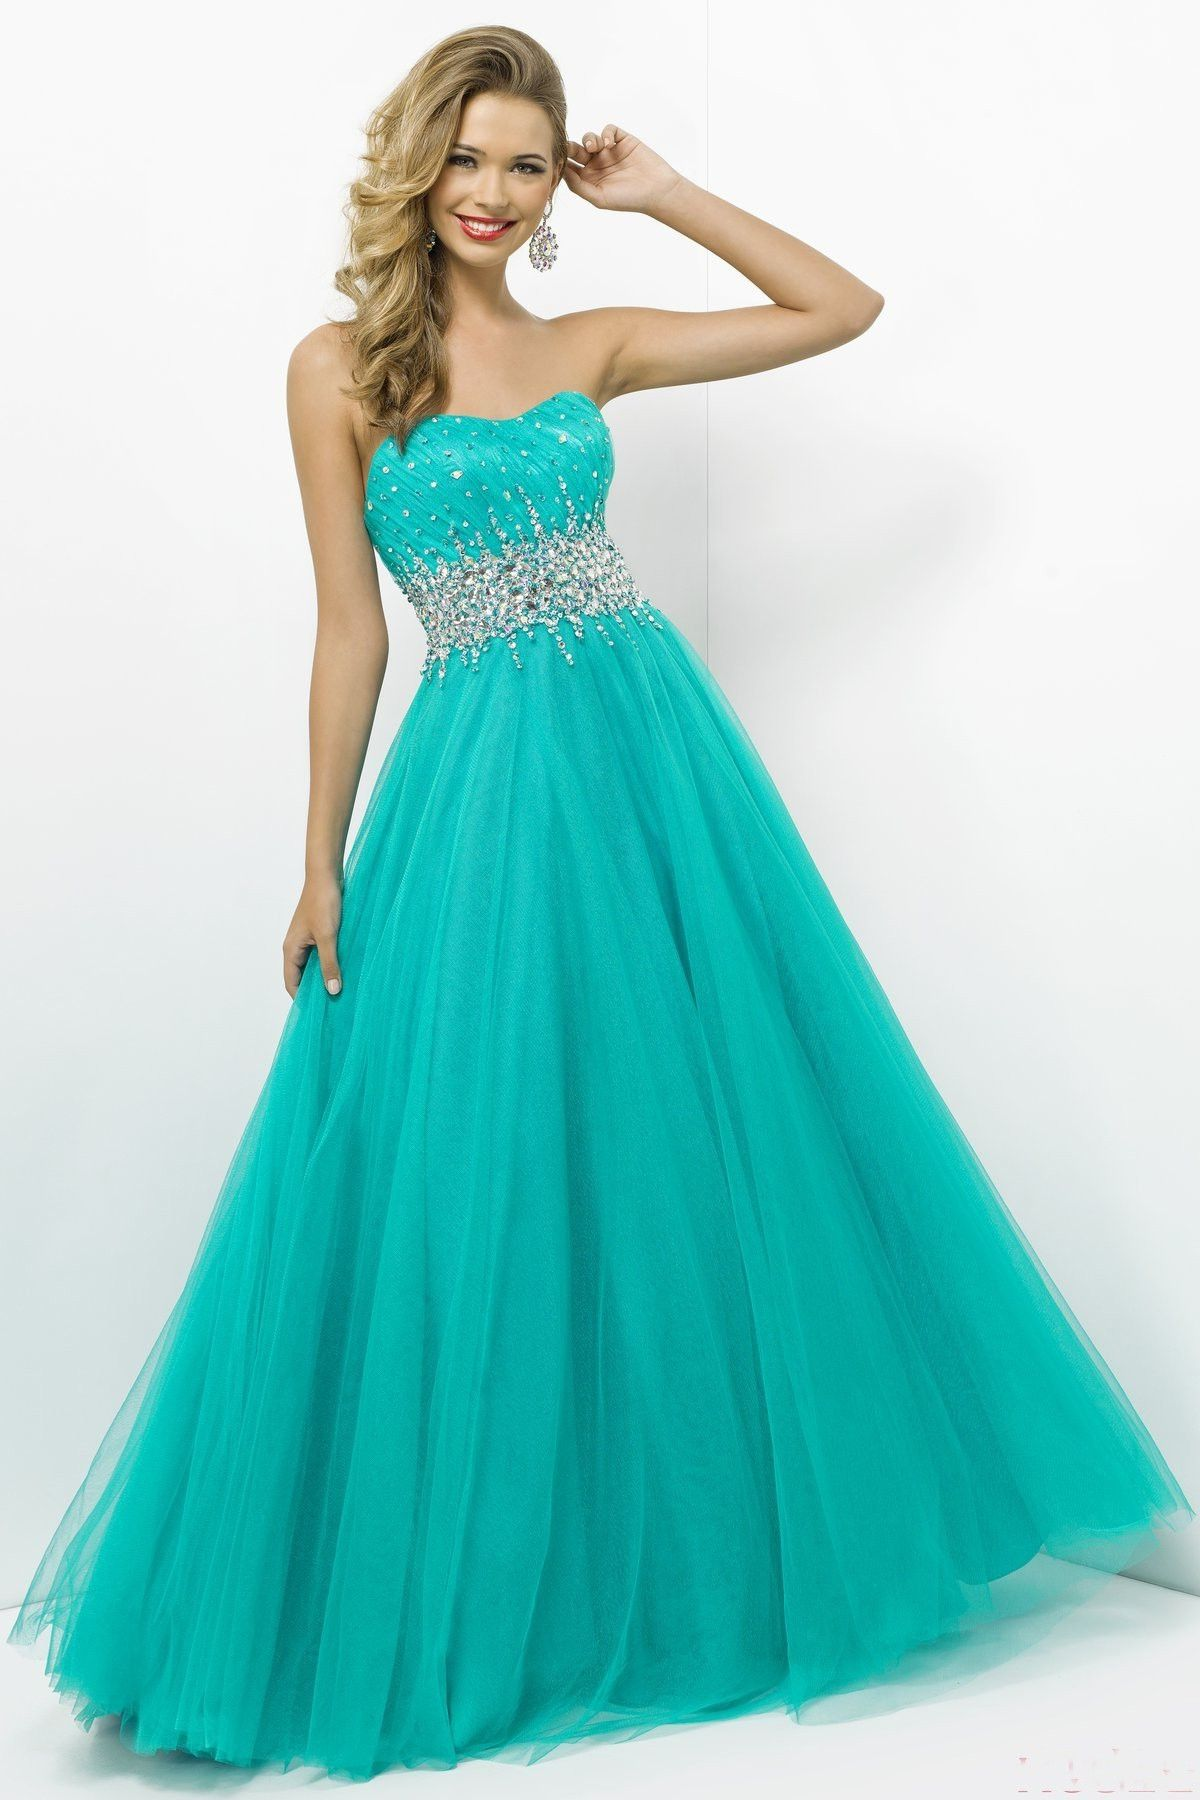 Prom dresses prom dresses for teens prom dresses long 2014 for Teenage dresses for a wedding